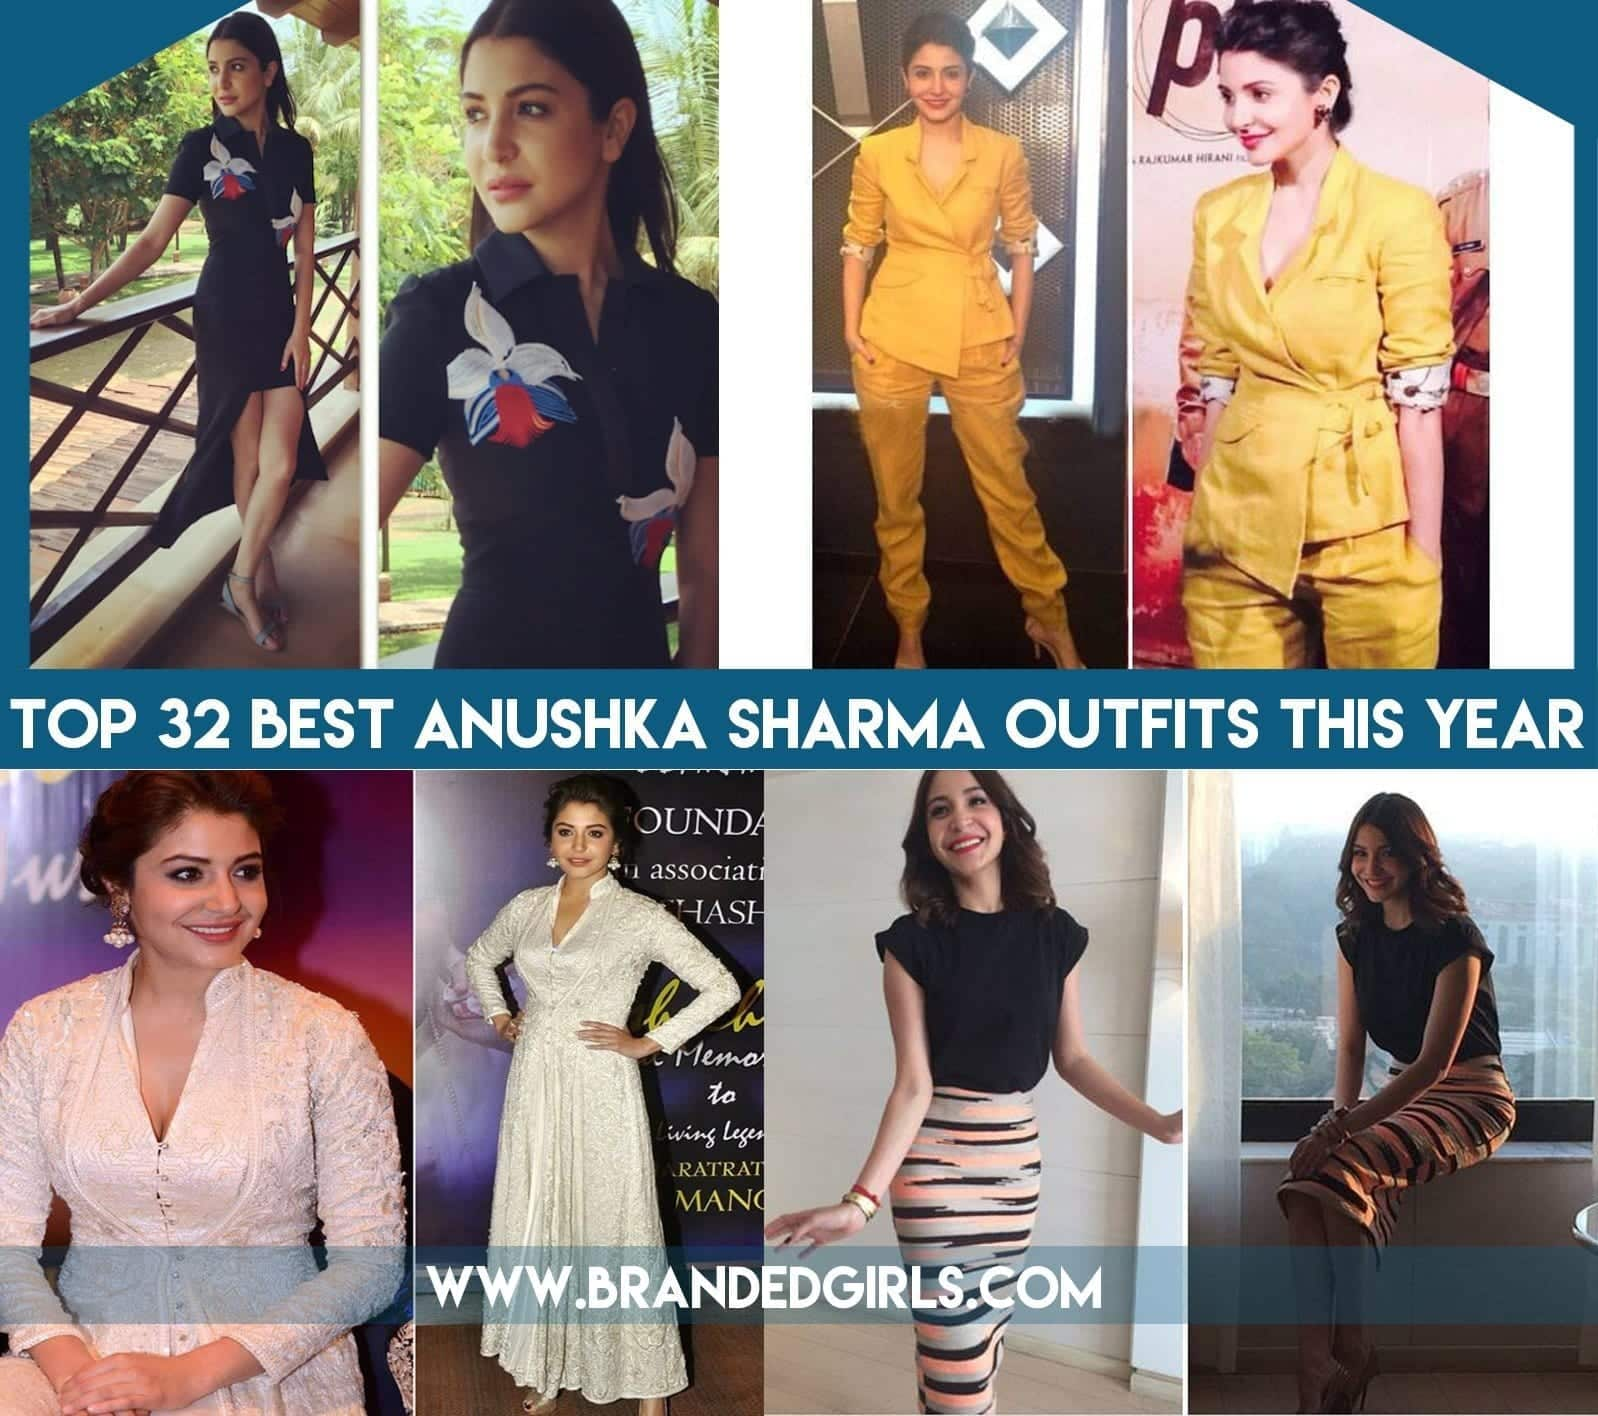 Top-32-Anushka-Sharma-Outfits-This-Year Anushka Sharma Outfits-32 Best Dressing Styles of Anushka Sharma